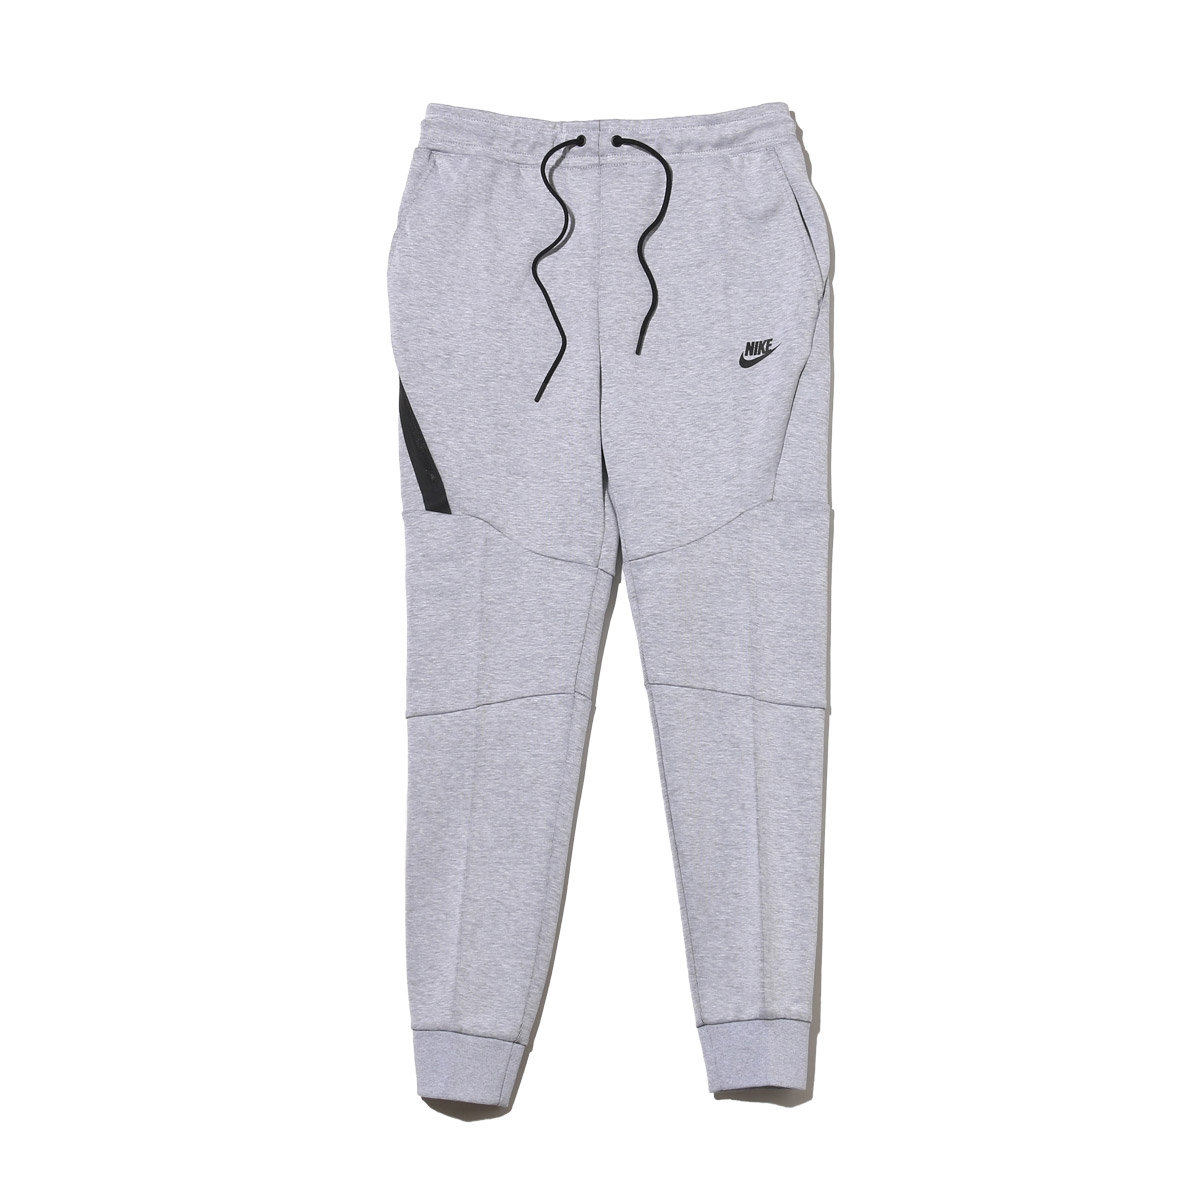 NIKE AS M NSW TCH FLC JGGR (Nike technical center fleece jogger underwear) WHITE/HTR/BLACK 17SU-I